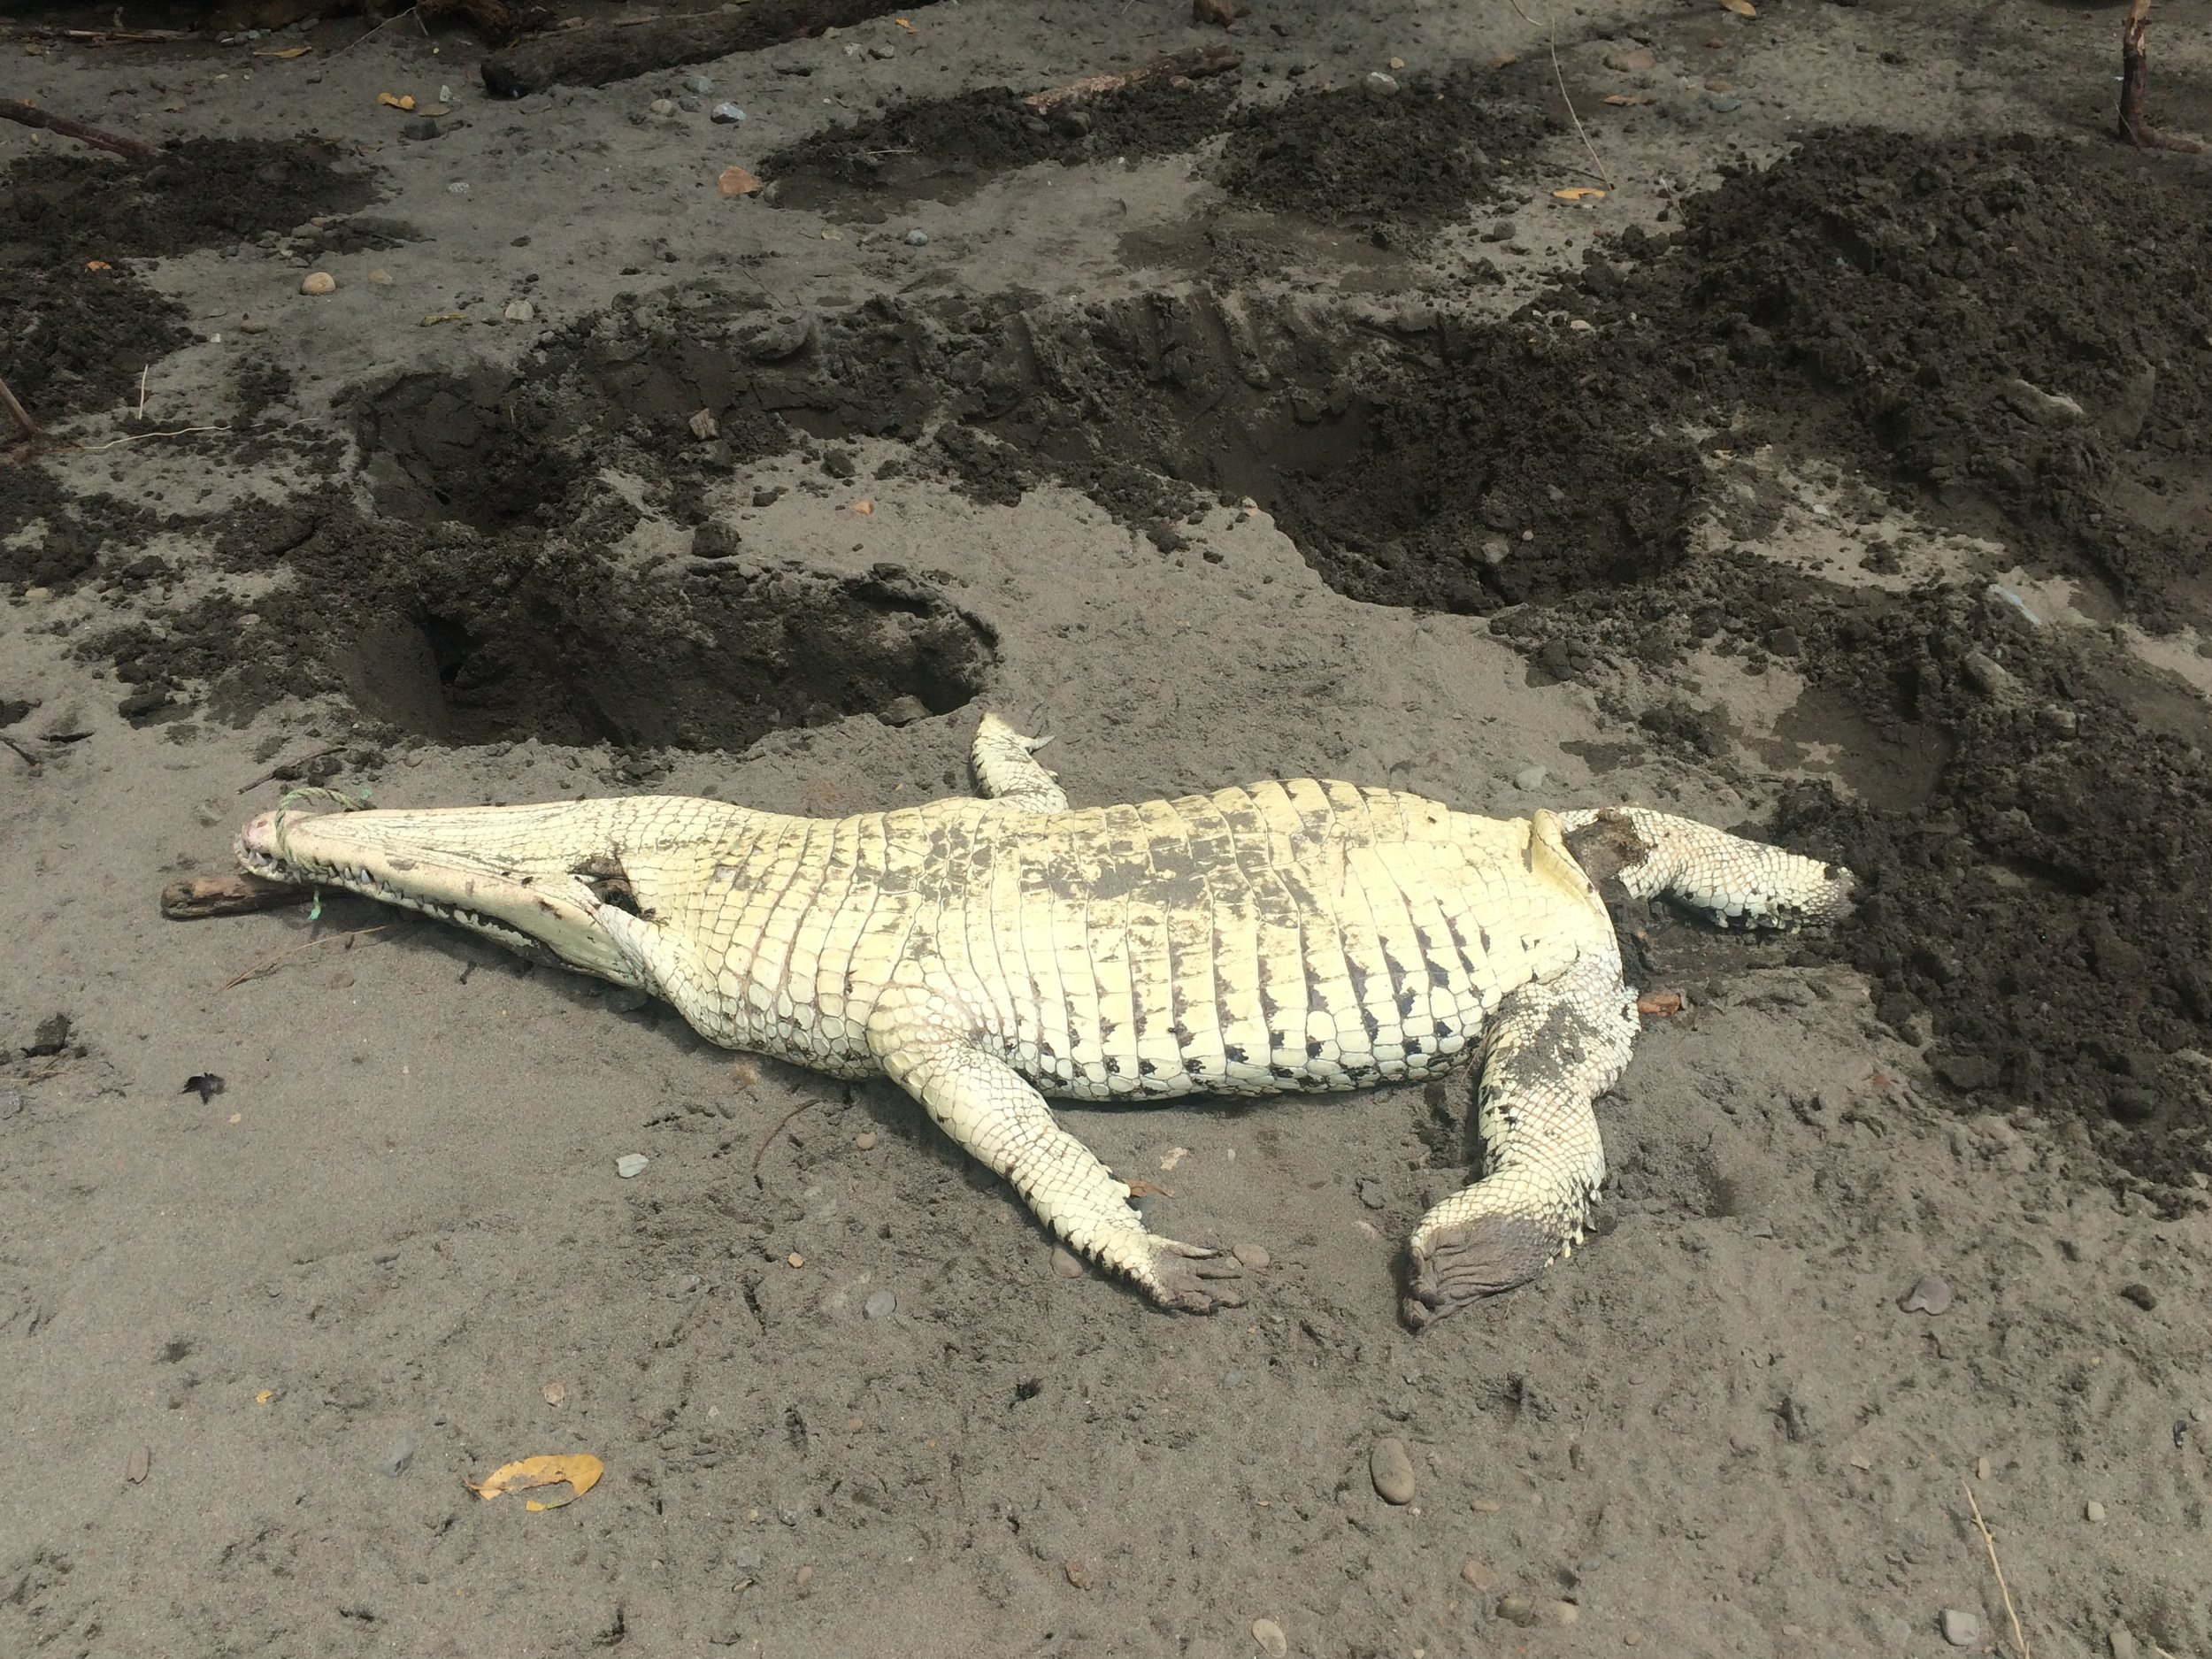 Crocodile found on the beach with a machete gash in its head and the tail removed.